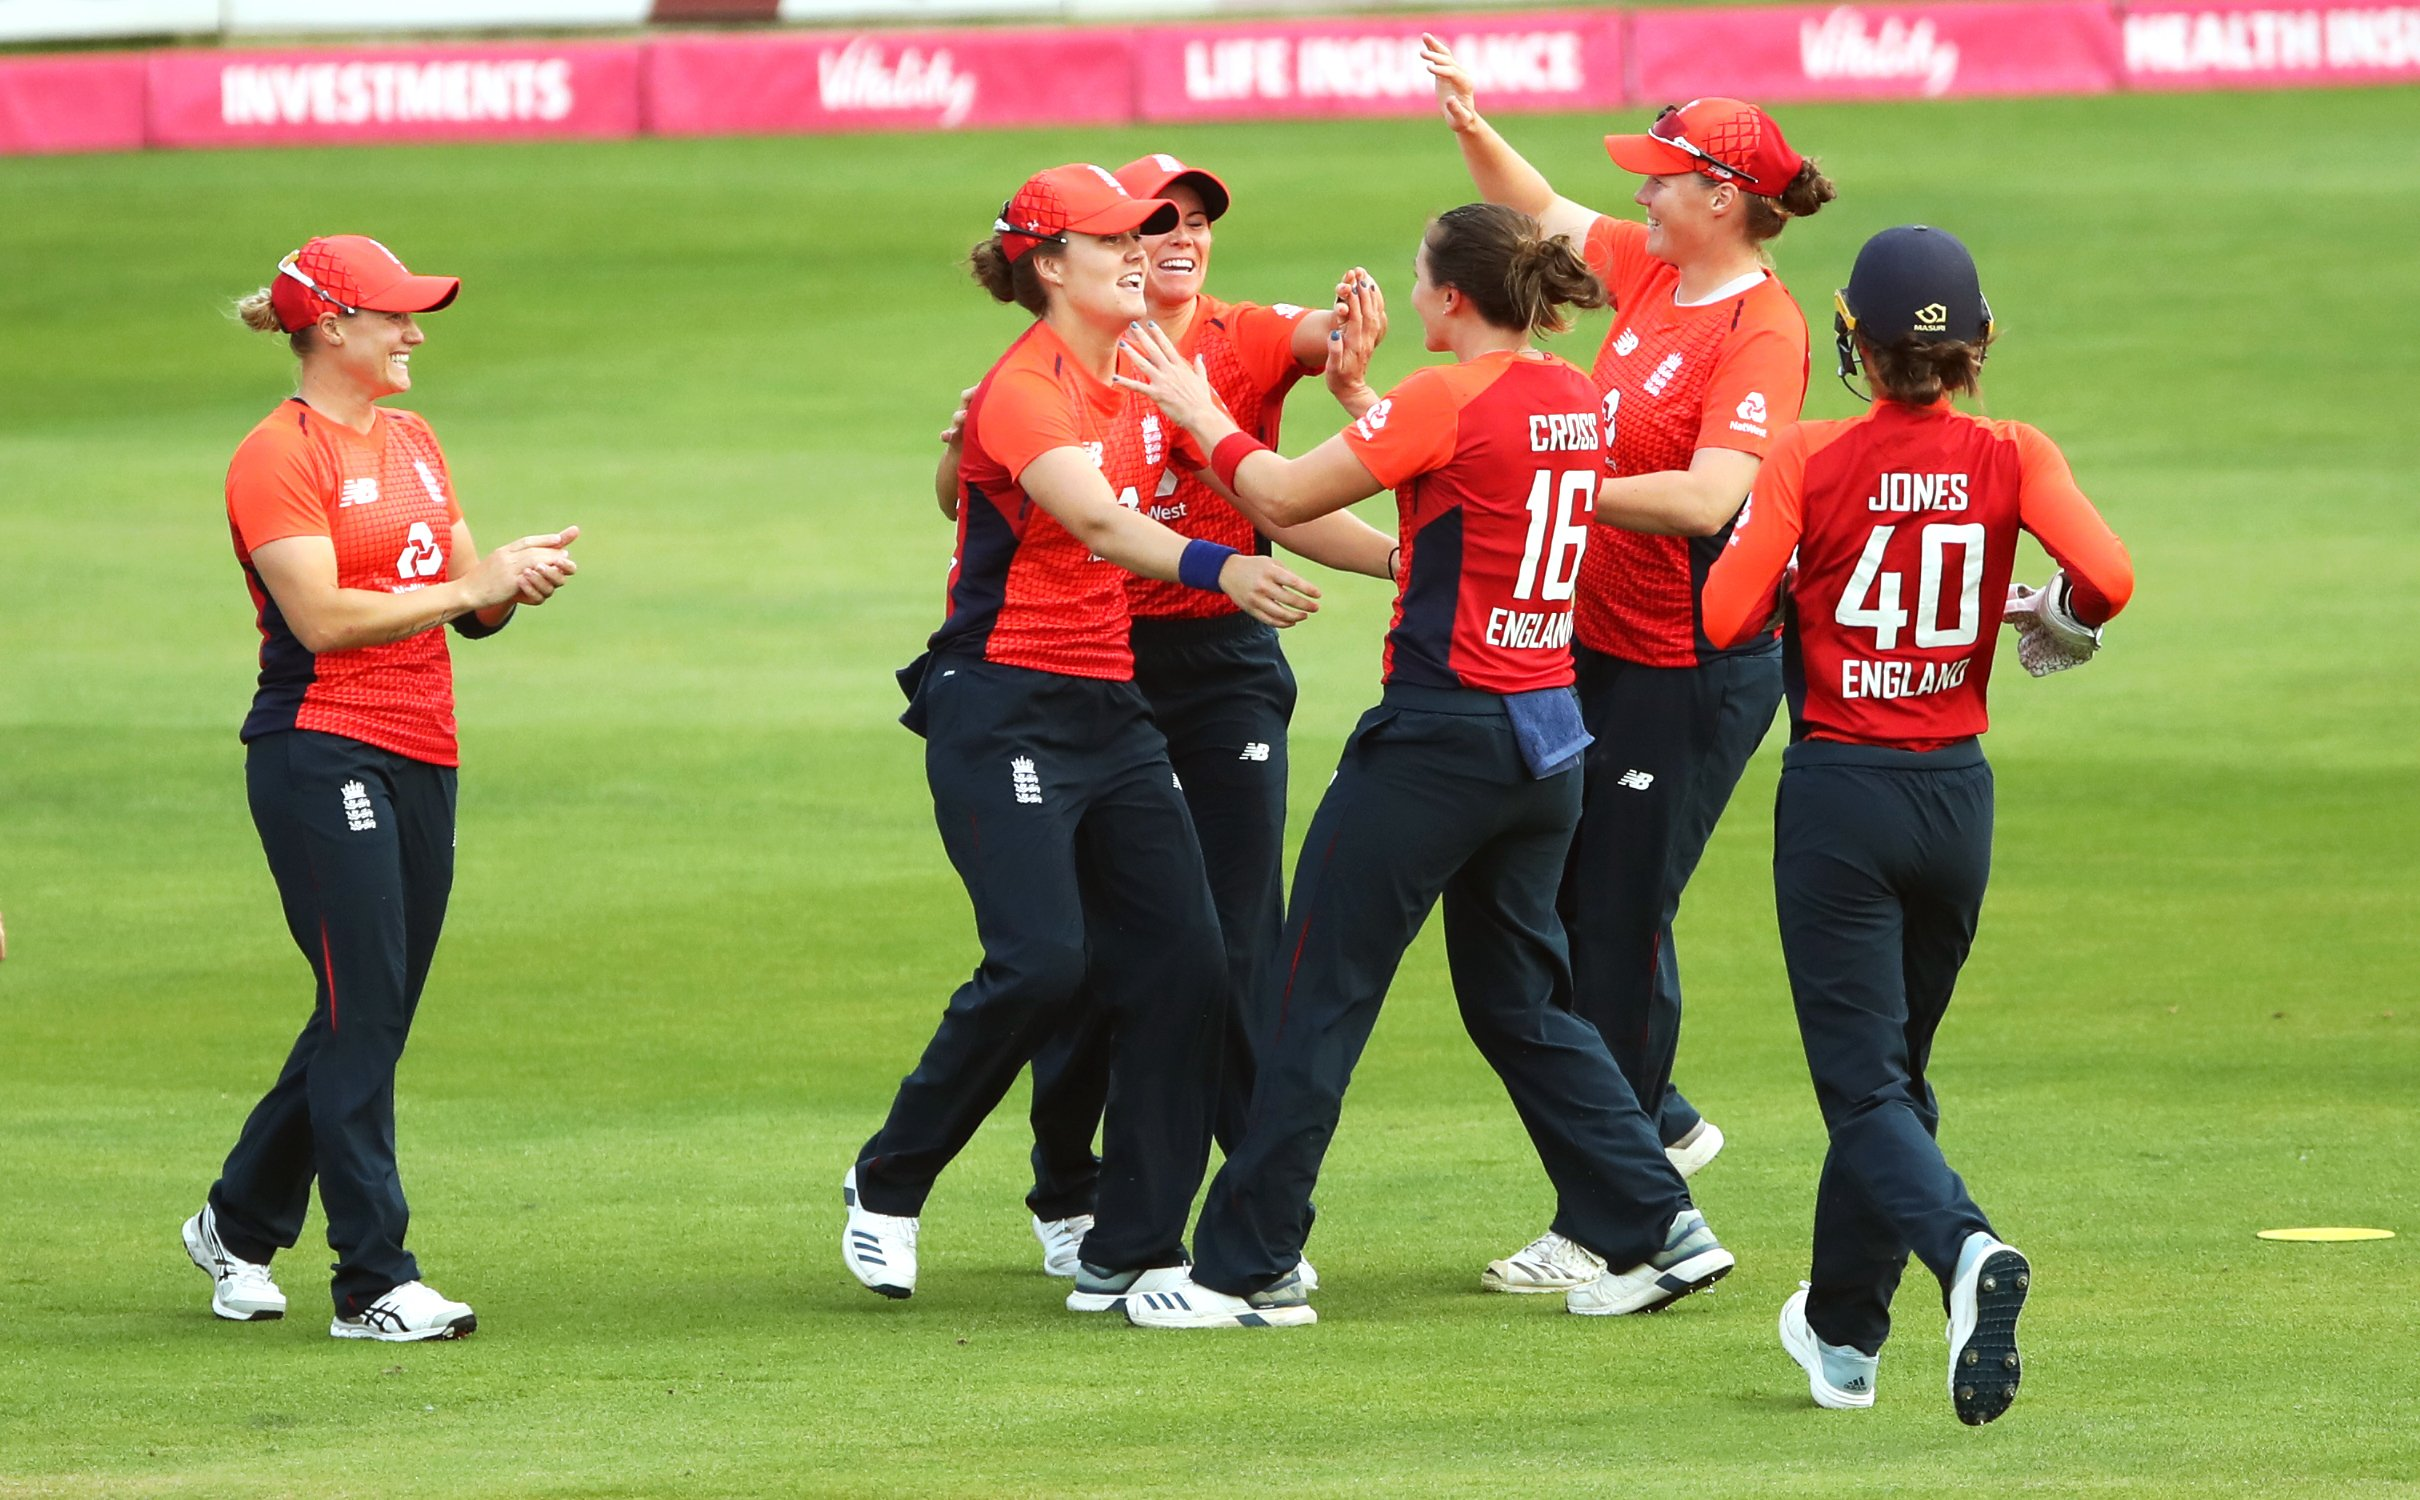 Georgia Elwiss recalled to England cricket squad replacing Kirstie Gordon for T20 World Cup as England bid for revenge against bitter rivals and defending champions Australia